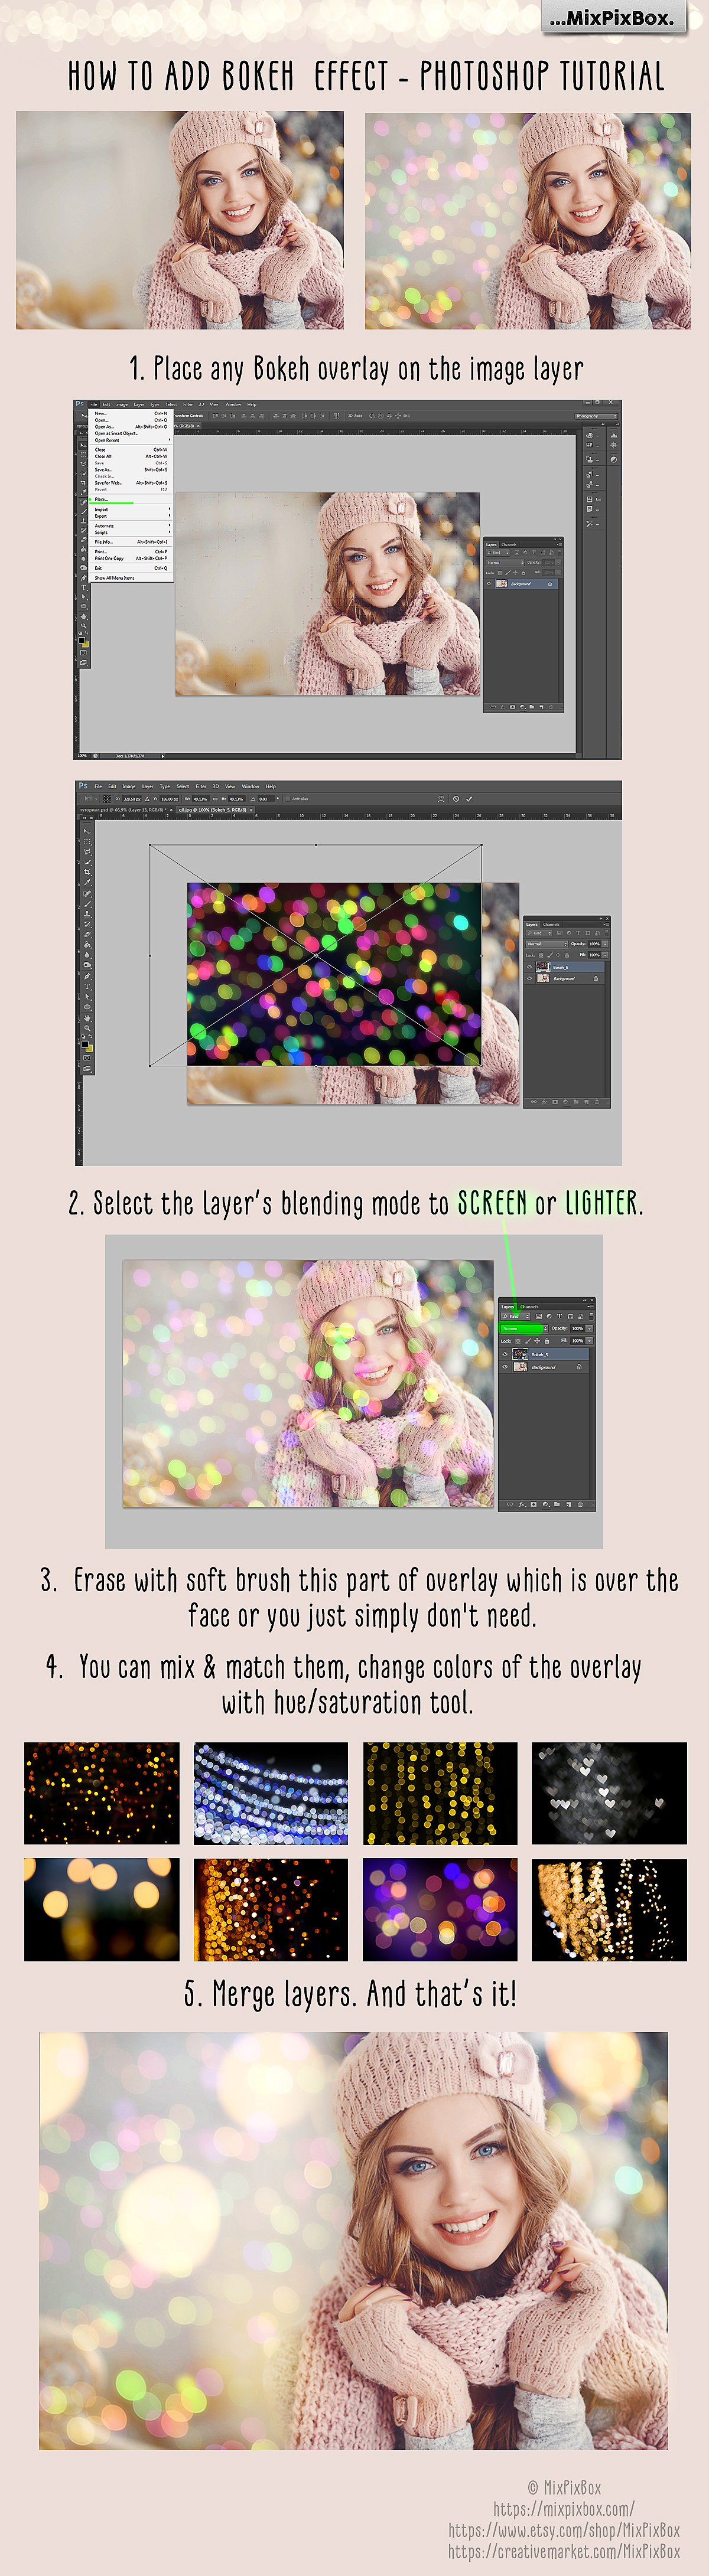 100 Bokeh Photo Overlays - $9 - 8 2